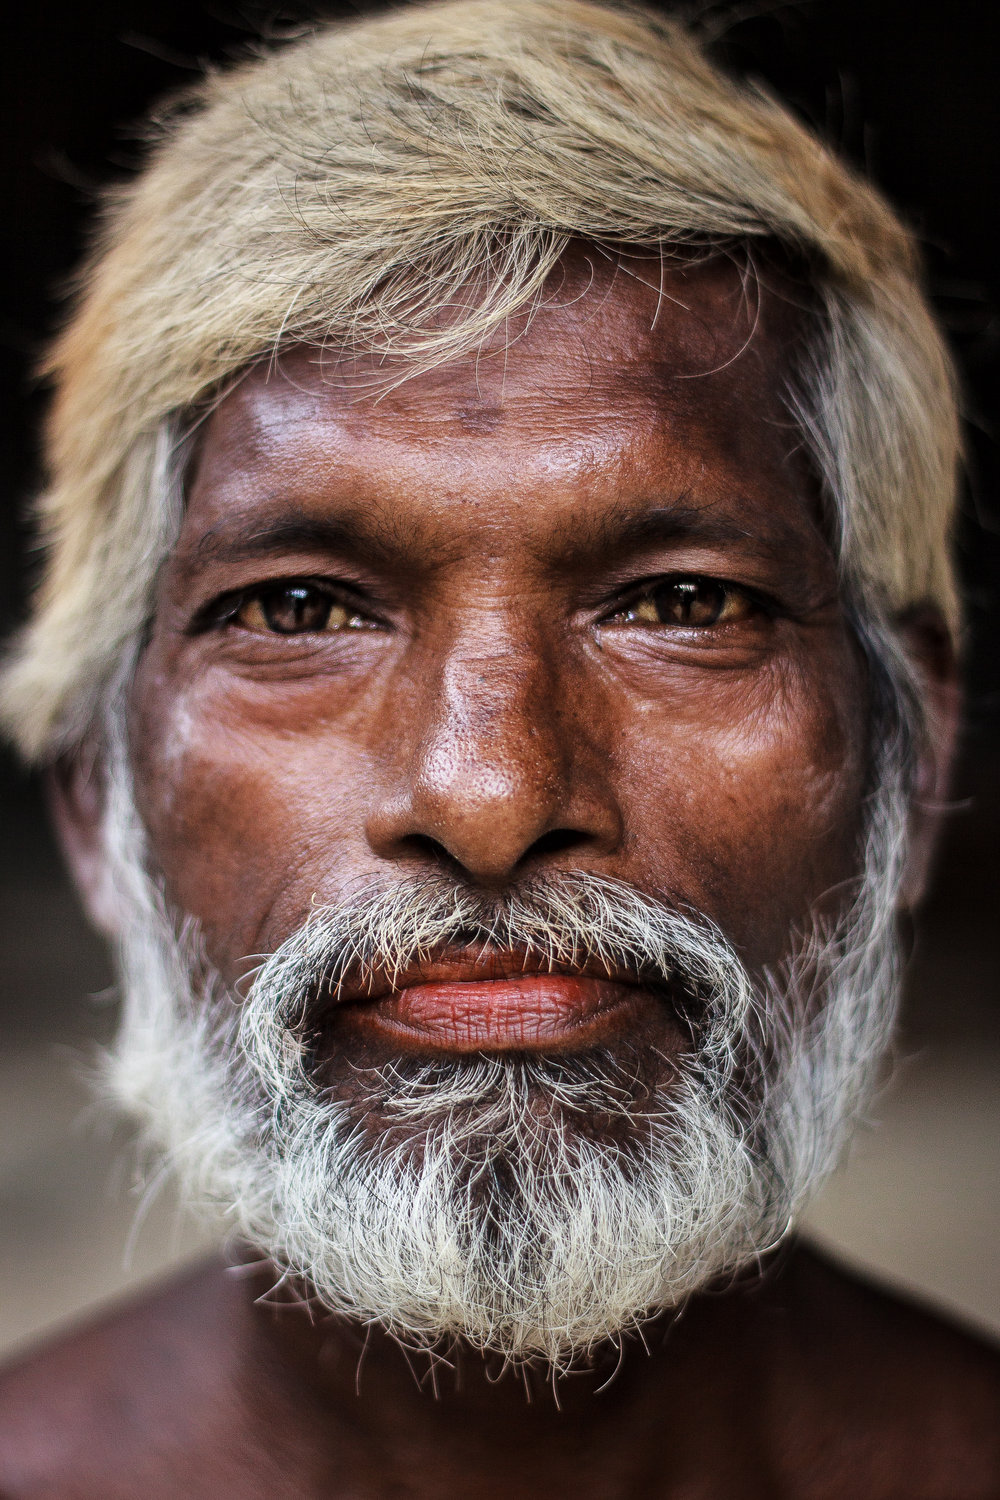 portrait of a construction worker in Jaffna - Sri Lanka